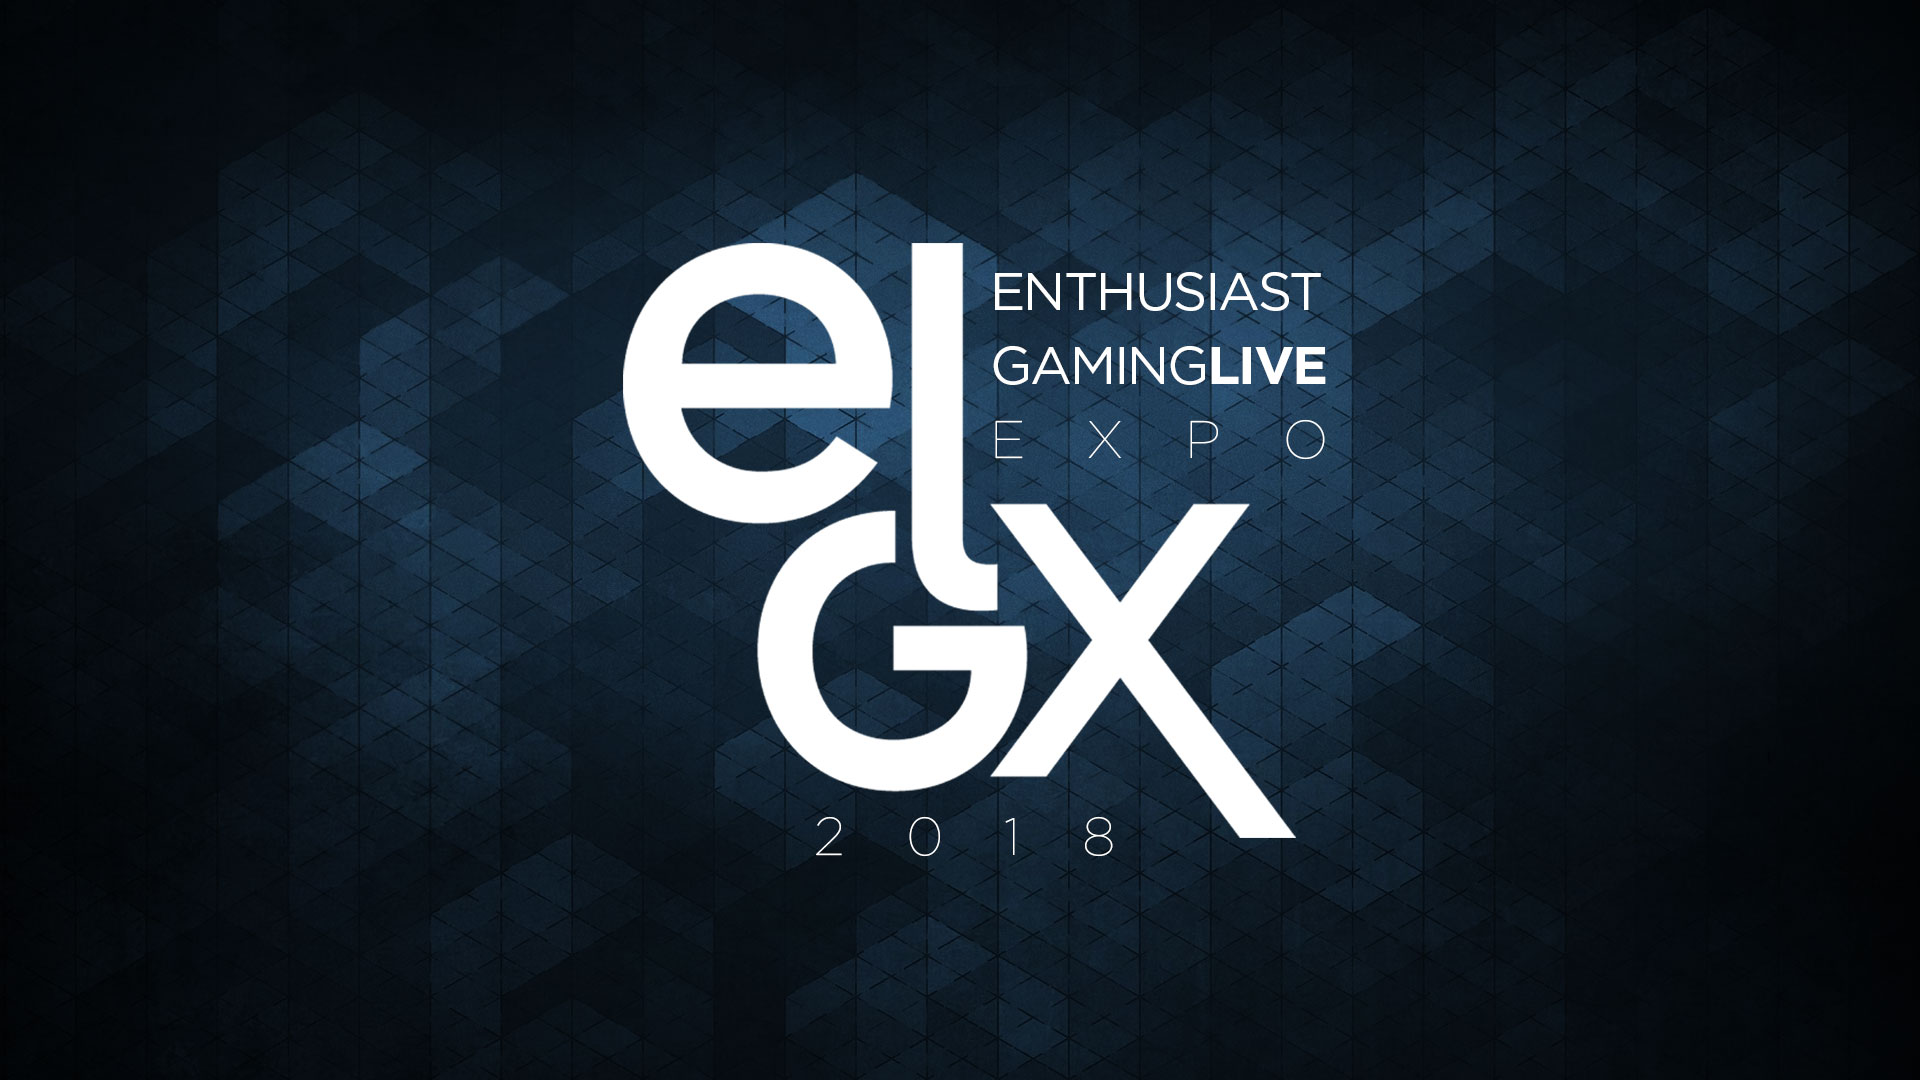 Enthusiast Gaming Live Expo (EGLX)